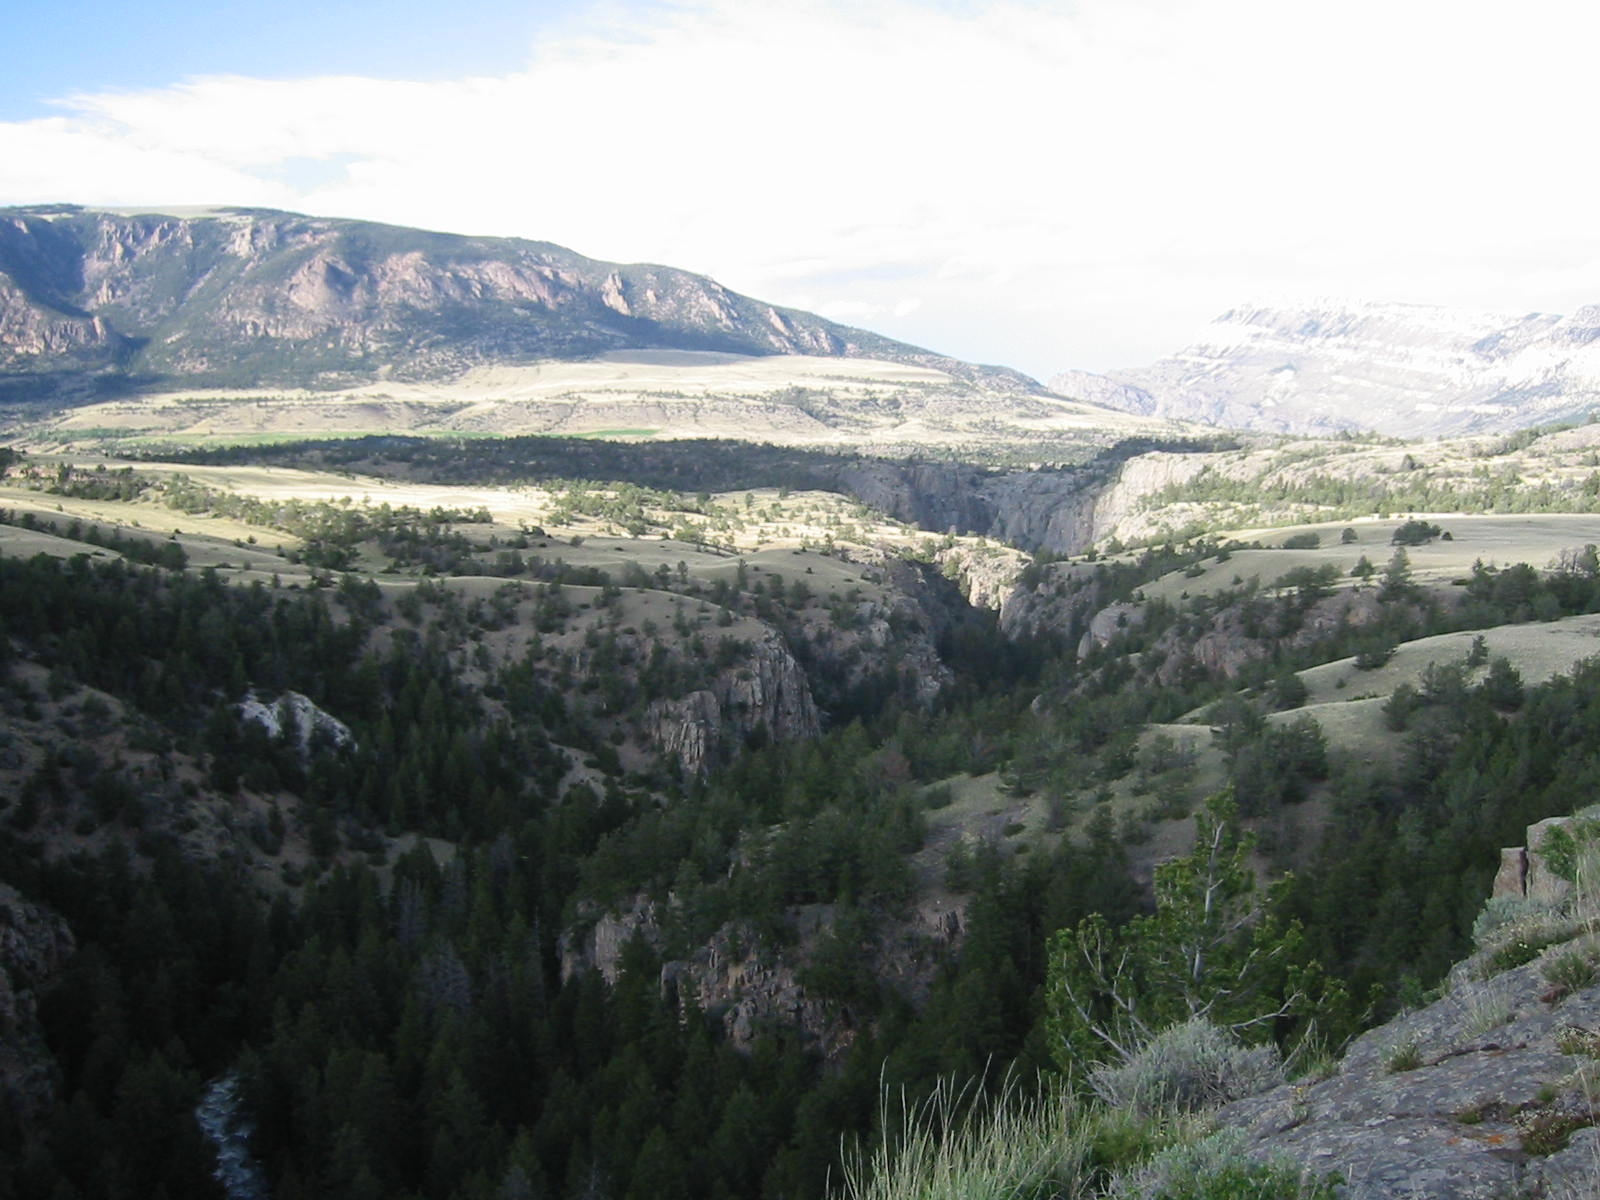 The flats above the gorge of the Clarks Fork